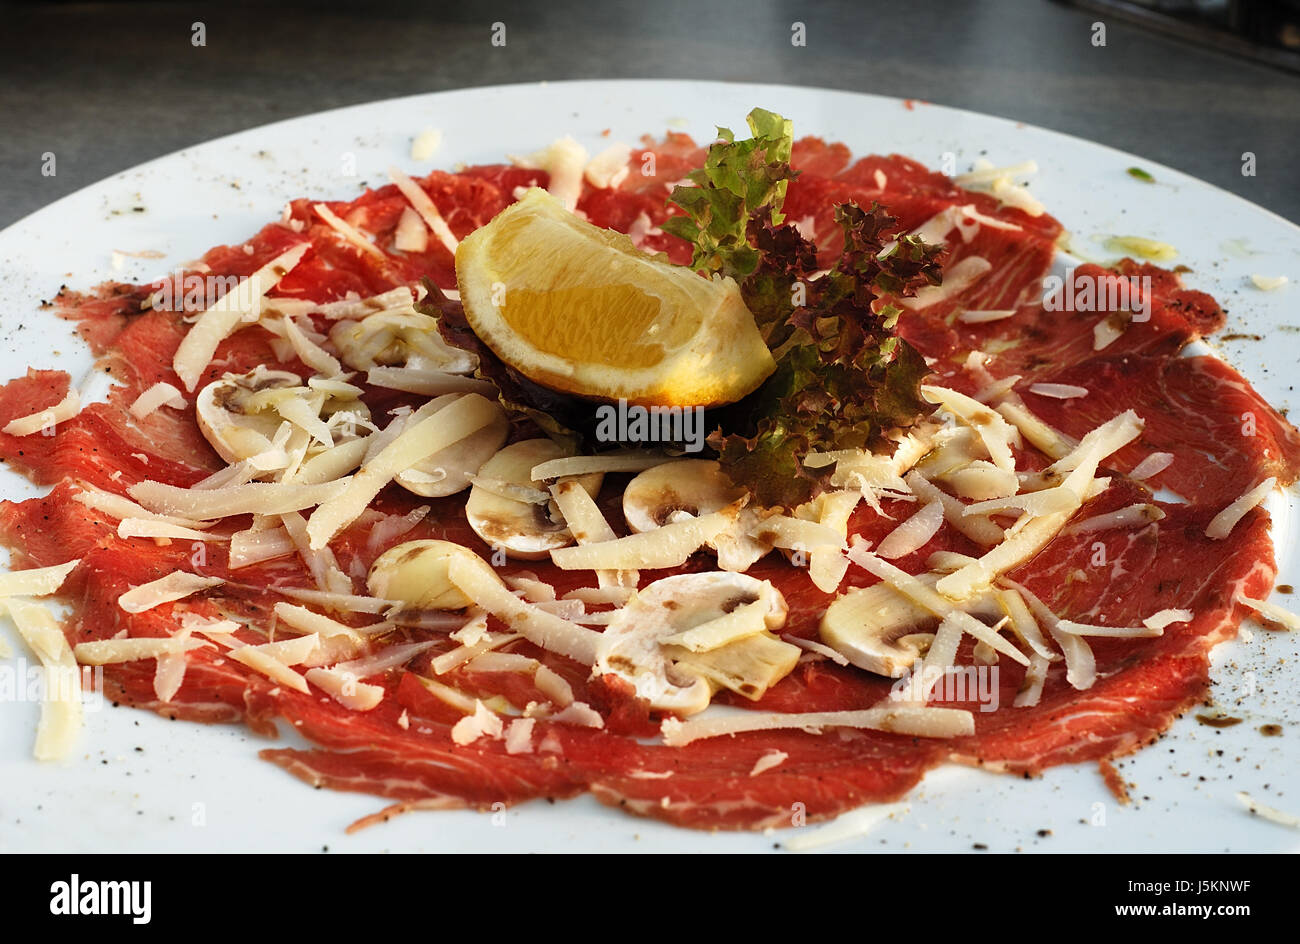 marinated beef carpaccio stockfotos marinated beef carpaccio bilder alamy. Black Bedroom Furniture Sets. Home Design Ideas